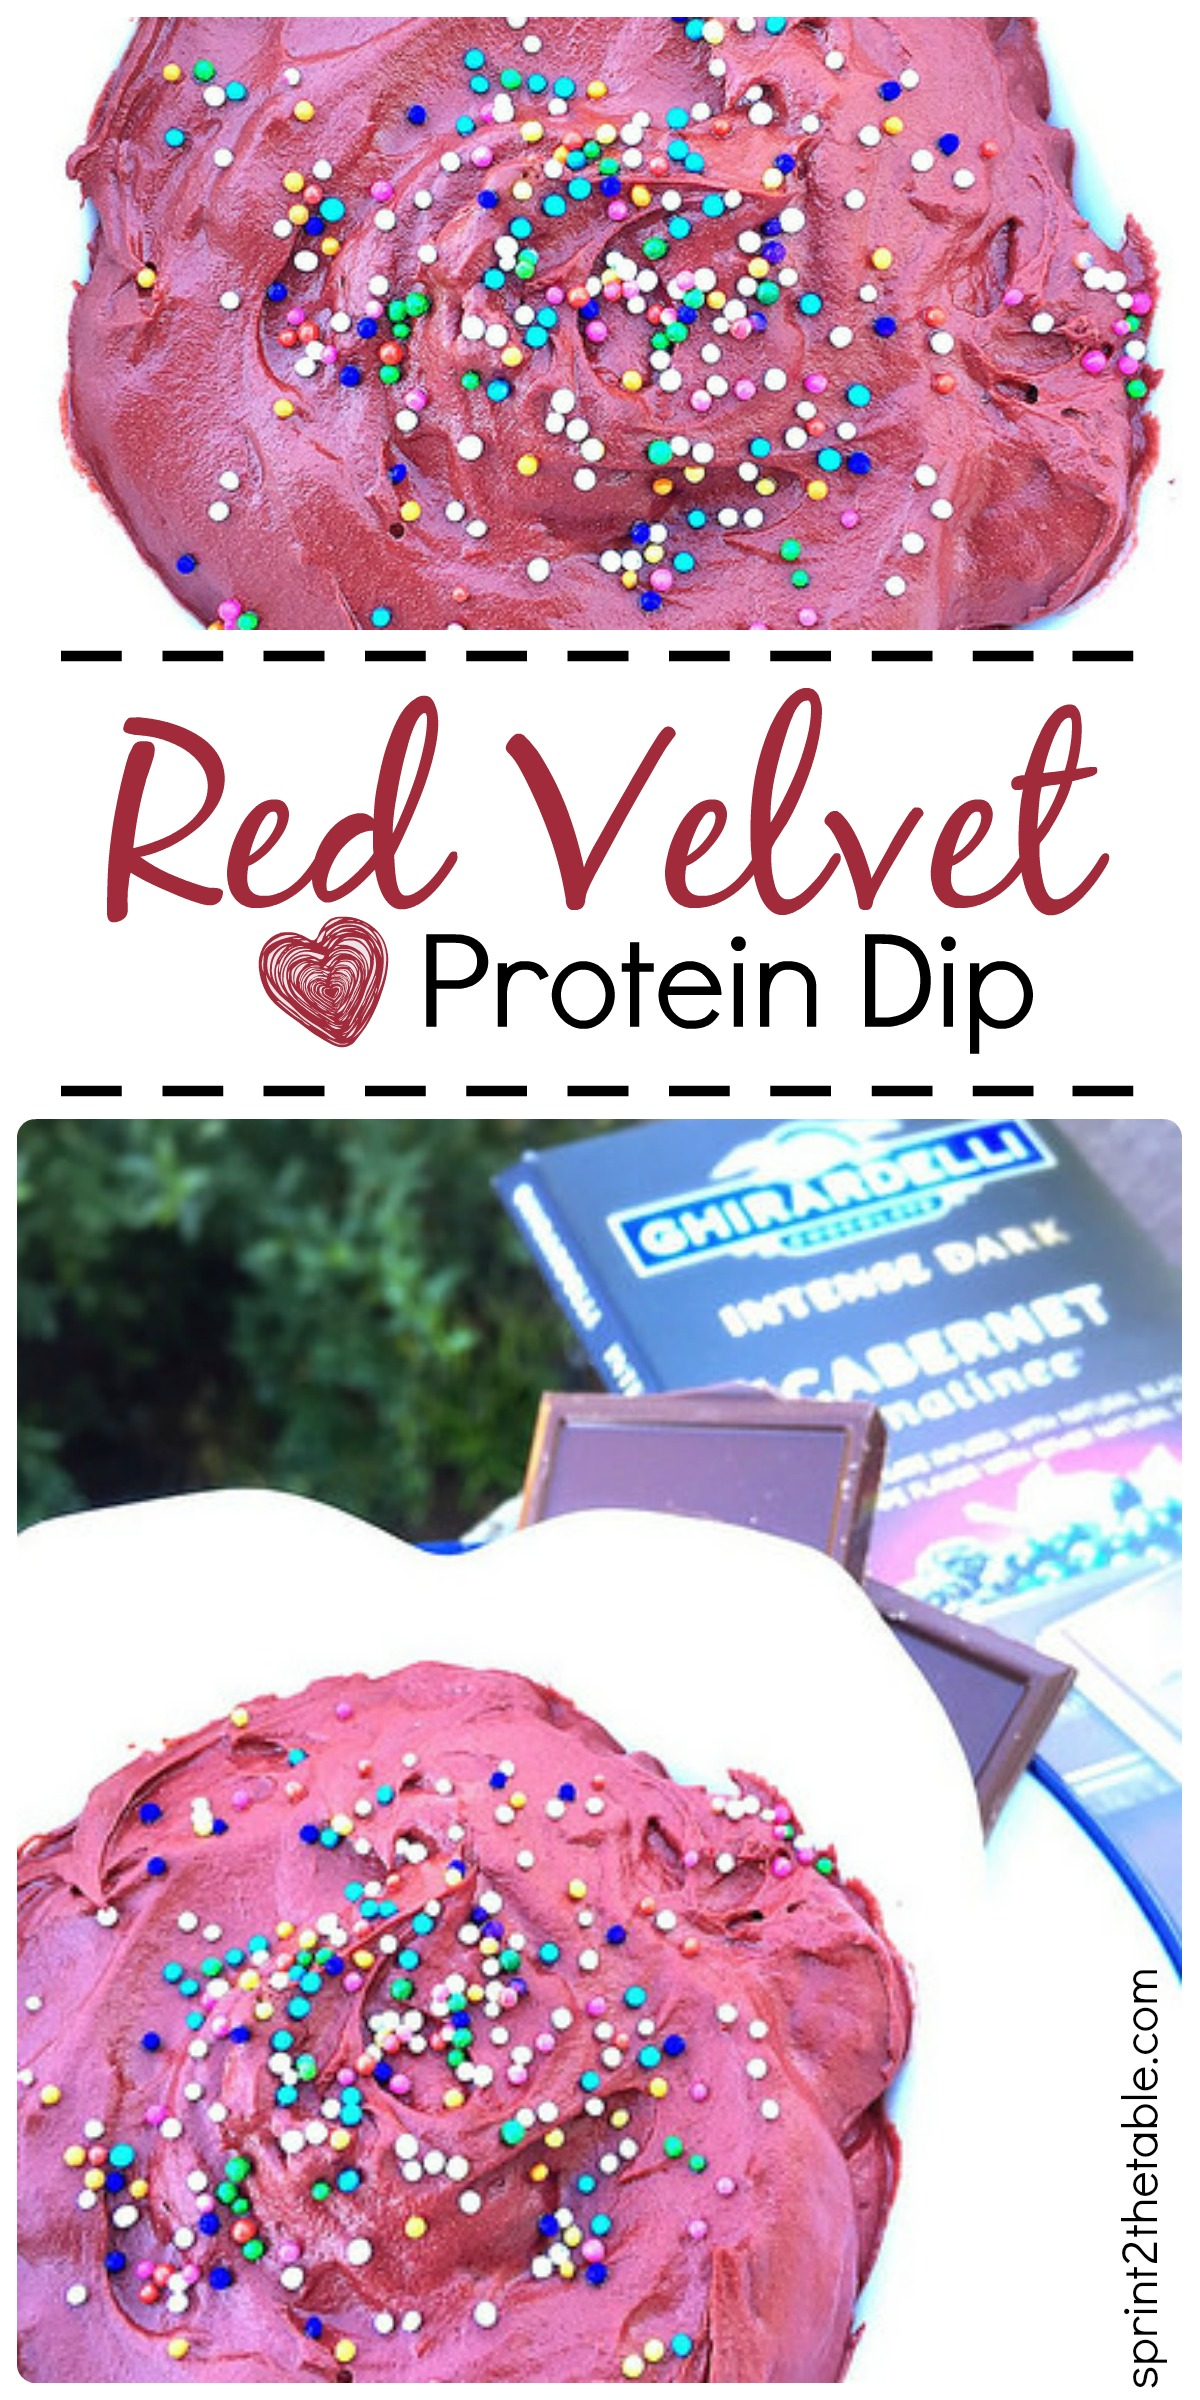 The perfect healthy dip for Valentine's or just because. This Red Velvet Protein Dip is done in less than 5 mins!